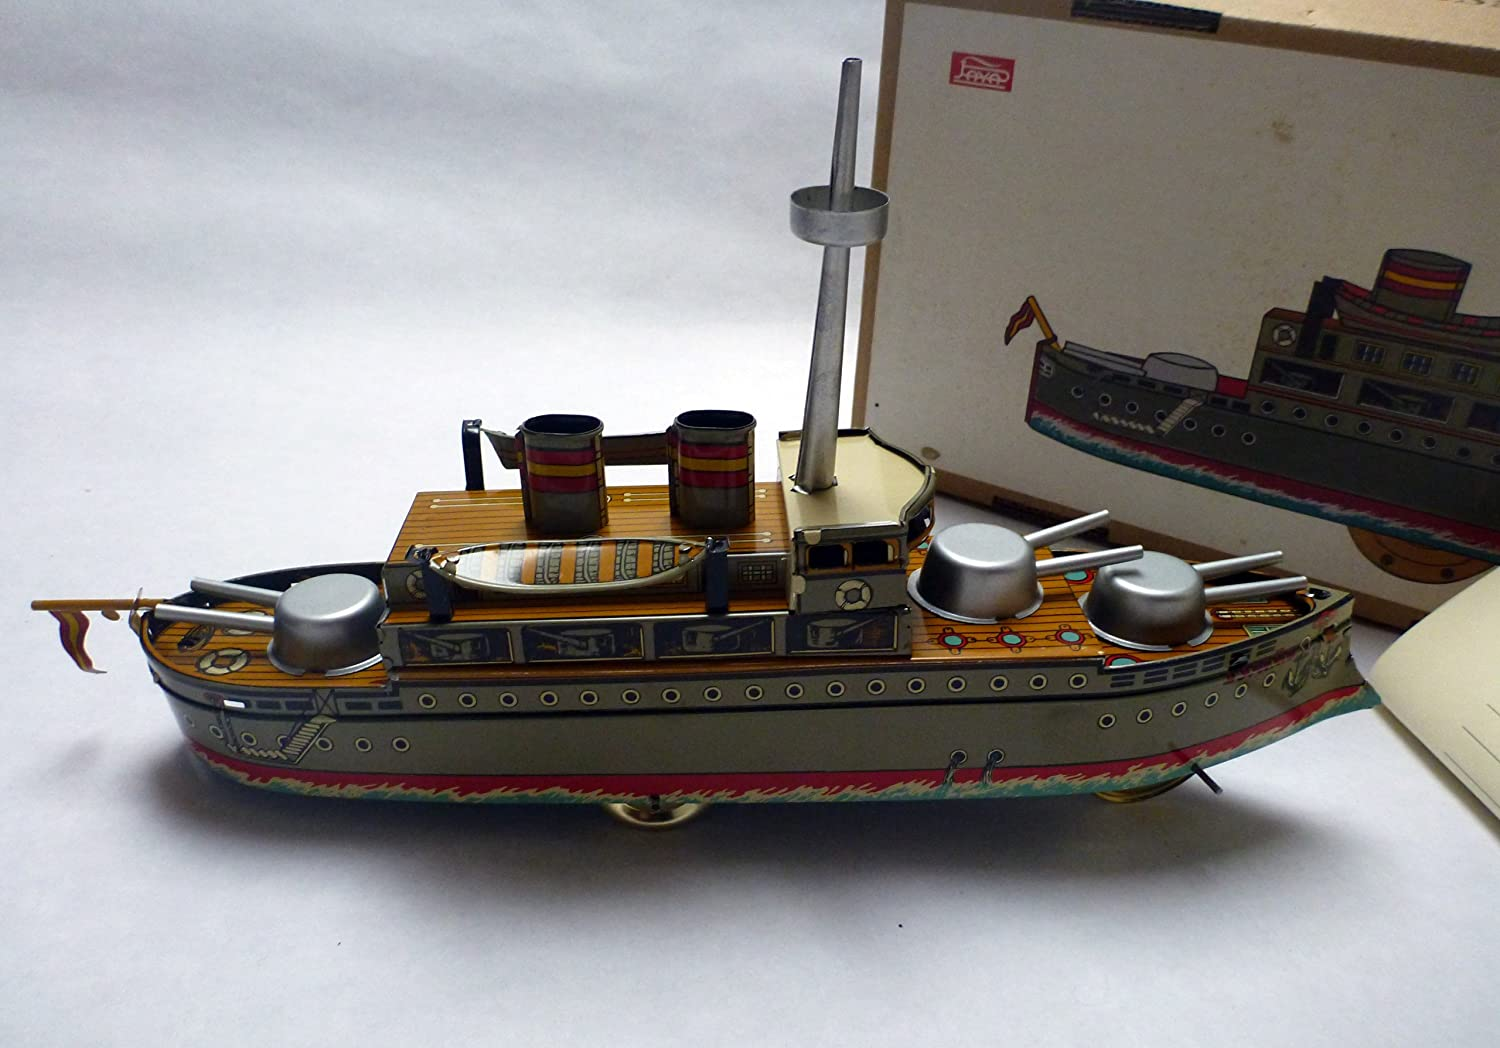 dynamic24 Paya Kreuzer, Battle Ship 1928, 34 cm, Original neuauflage, arroz Sue 1985, chapa de juguete para coleccionistas, Tin Plate Toy for Collectors